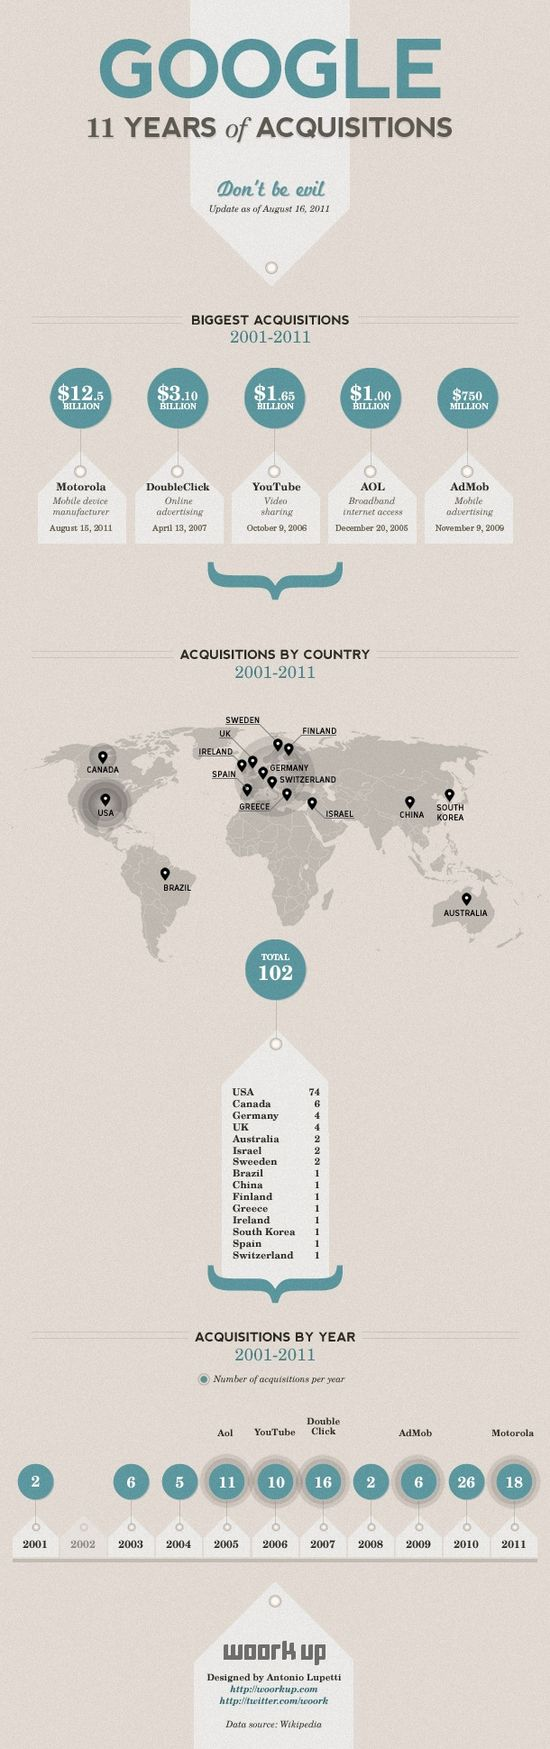 Google-Acquisitions-2001-2010-Infographic1